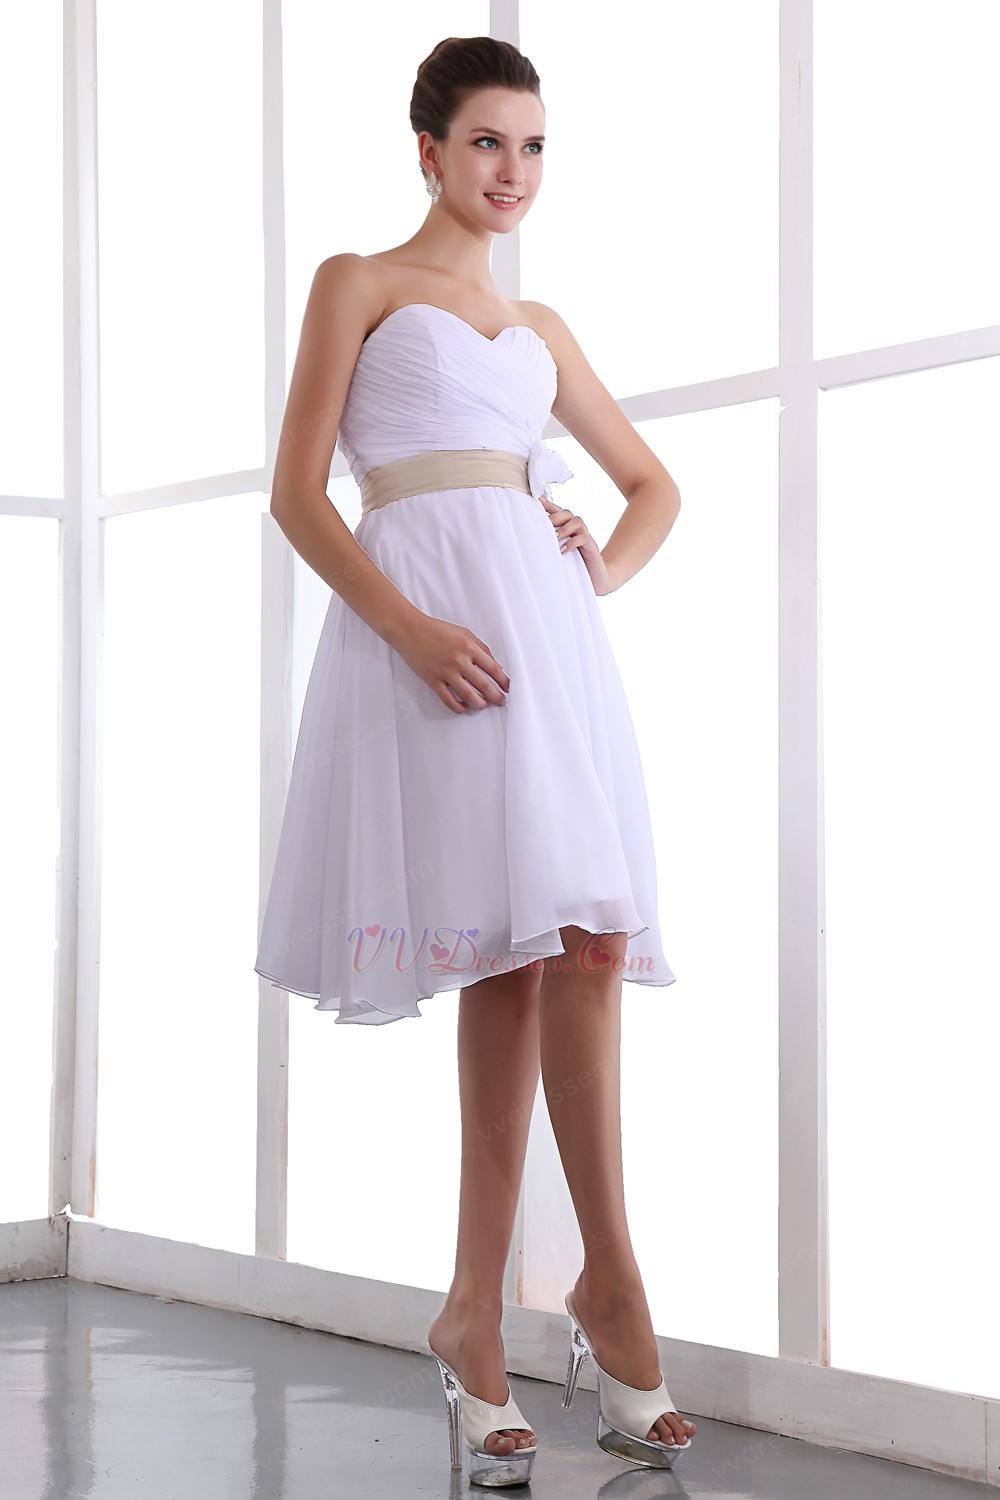 Short white chiffon bridesmaid dress under 100 dollars short white chiffon bridesmaid dress under 100 dollars powered by magic zoom move your mouse over image ombrellifo Image collections